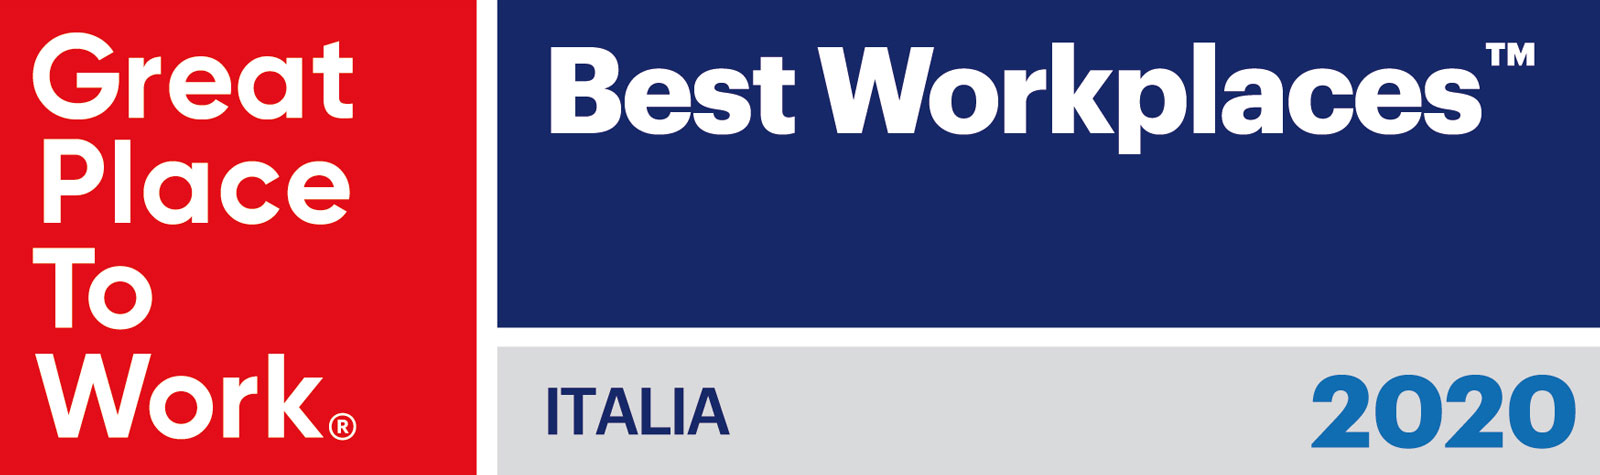 Best-Workplaces-Italia-2020